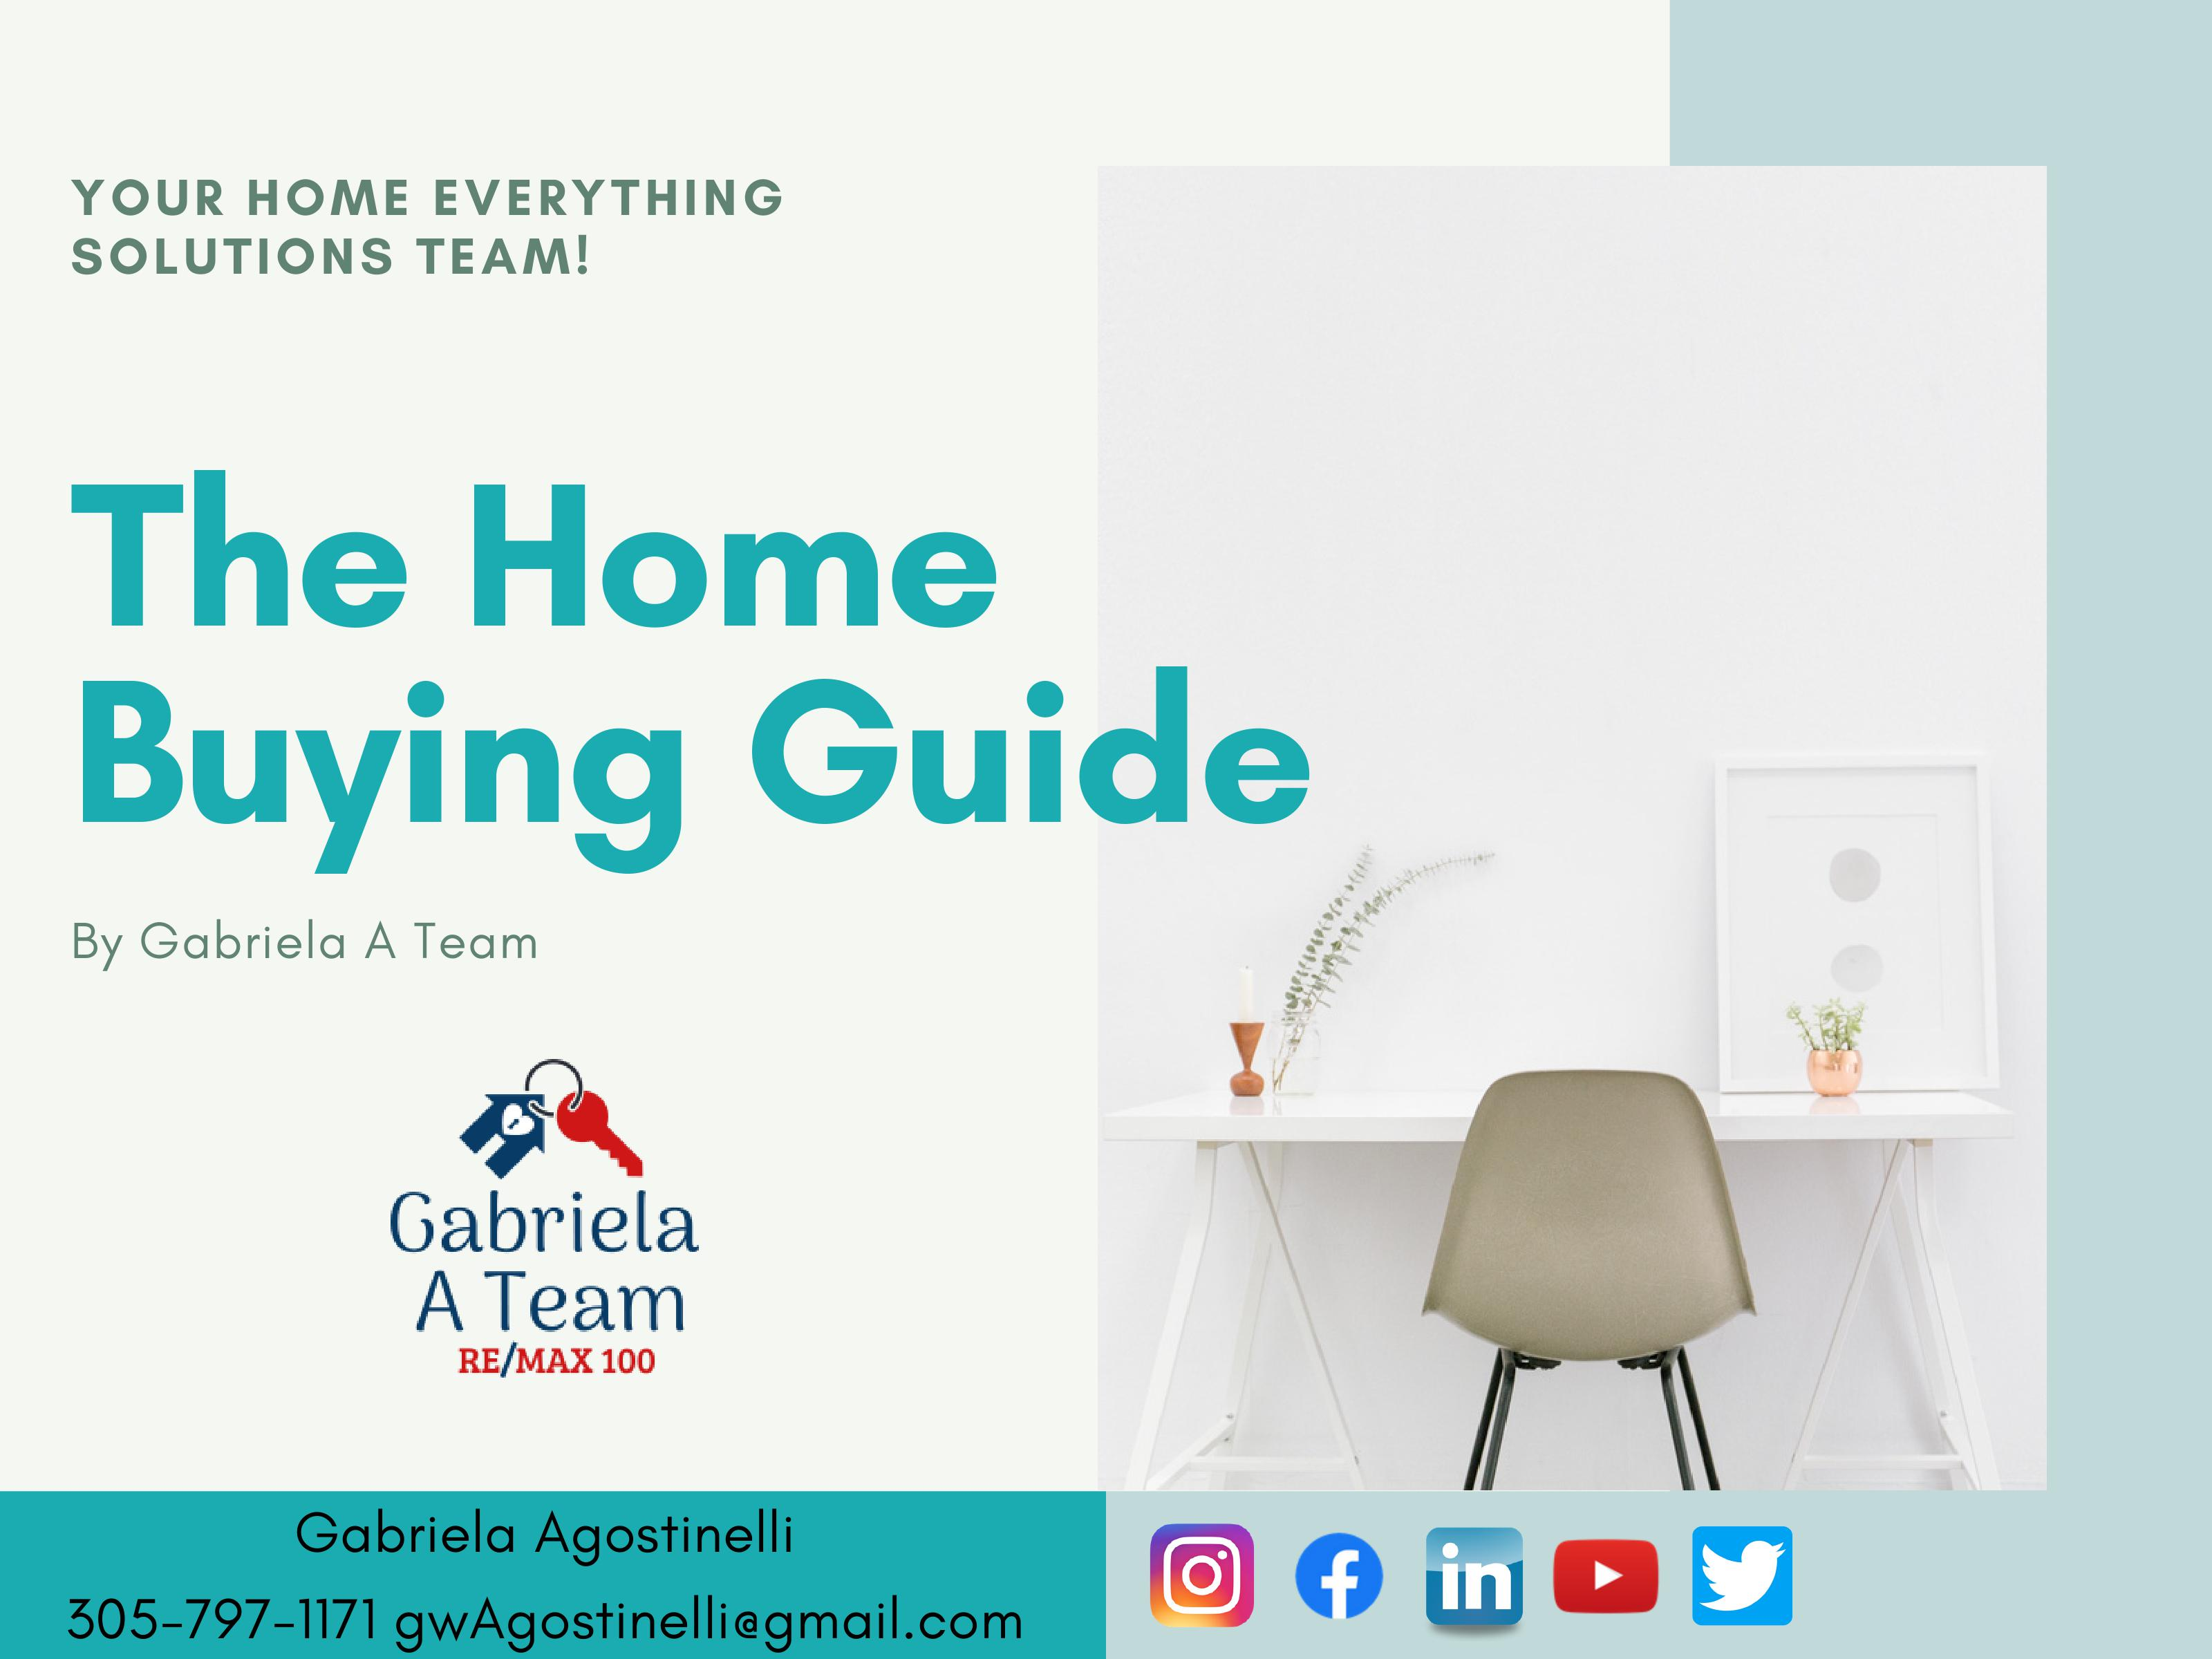 1st slide of home buying guide